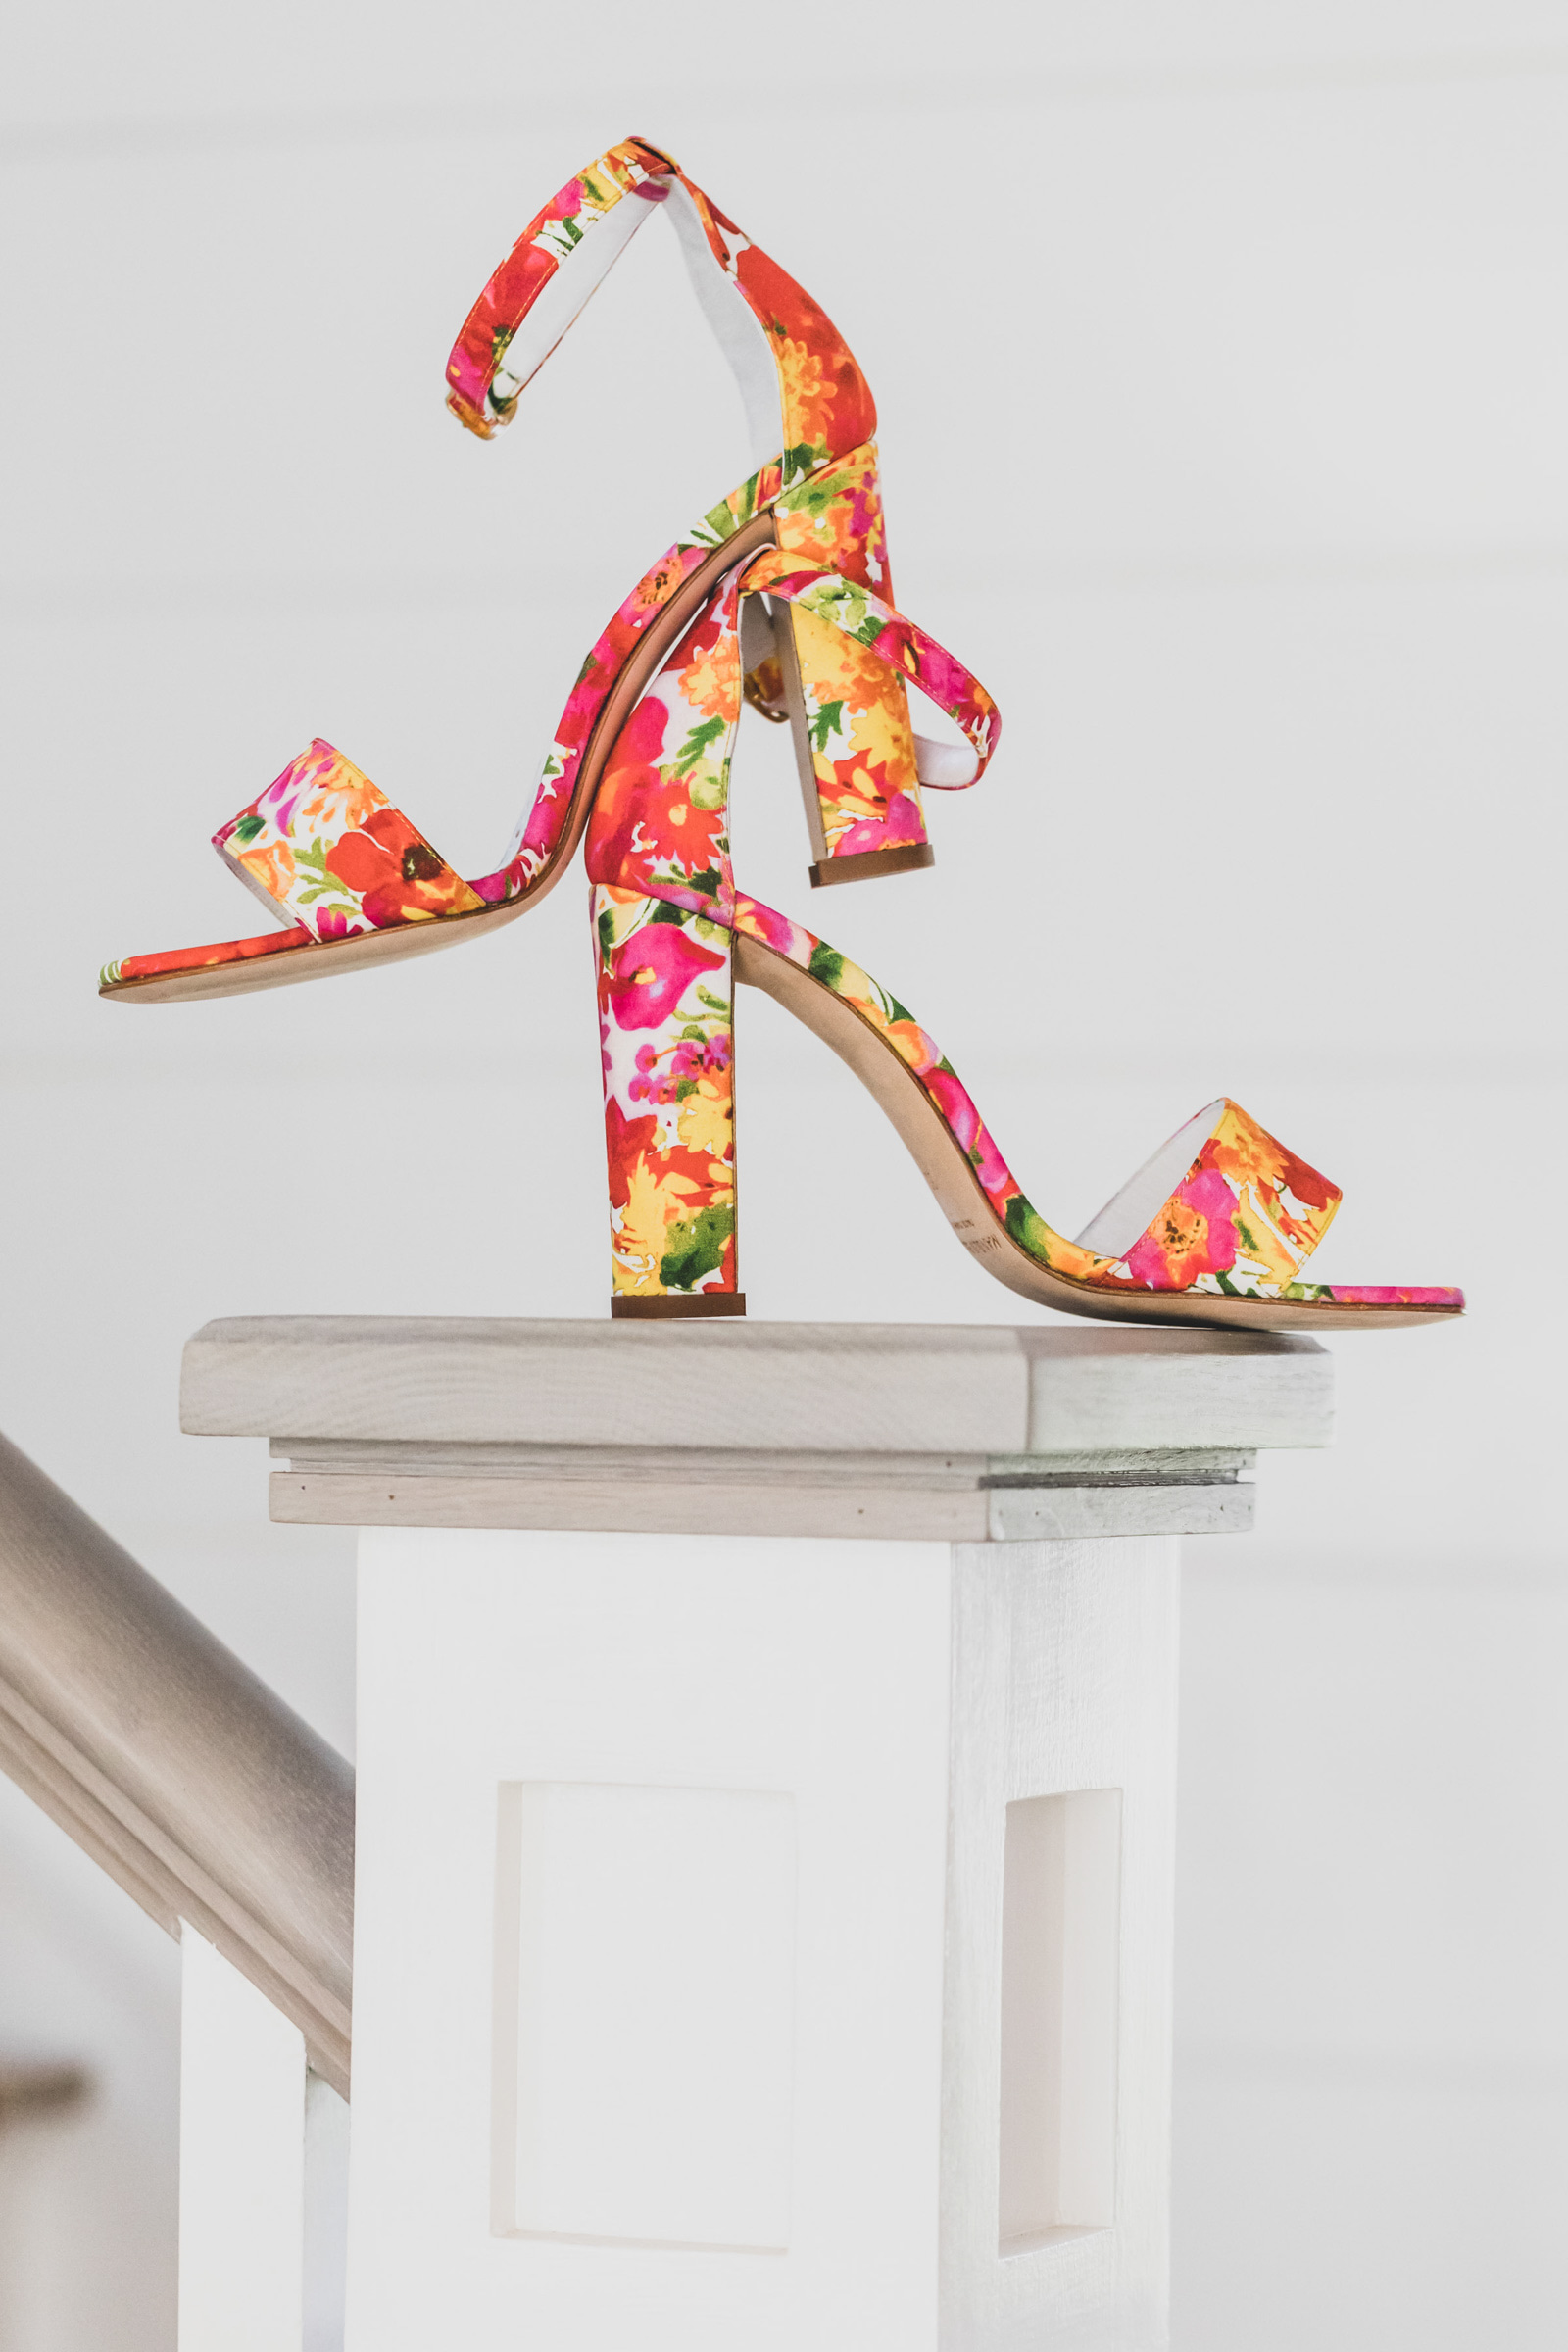 Sandals with red, pink, and yellow floral pattern photographed by Katie Kaiser